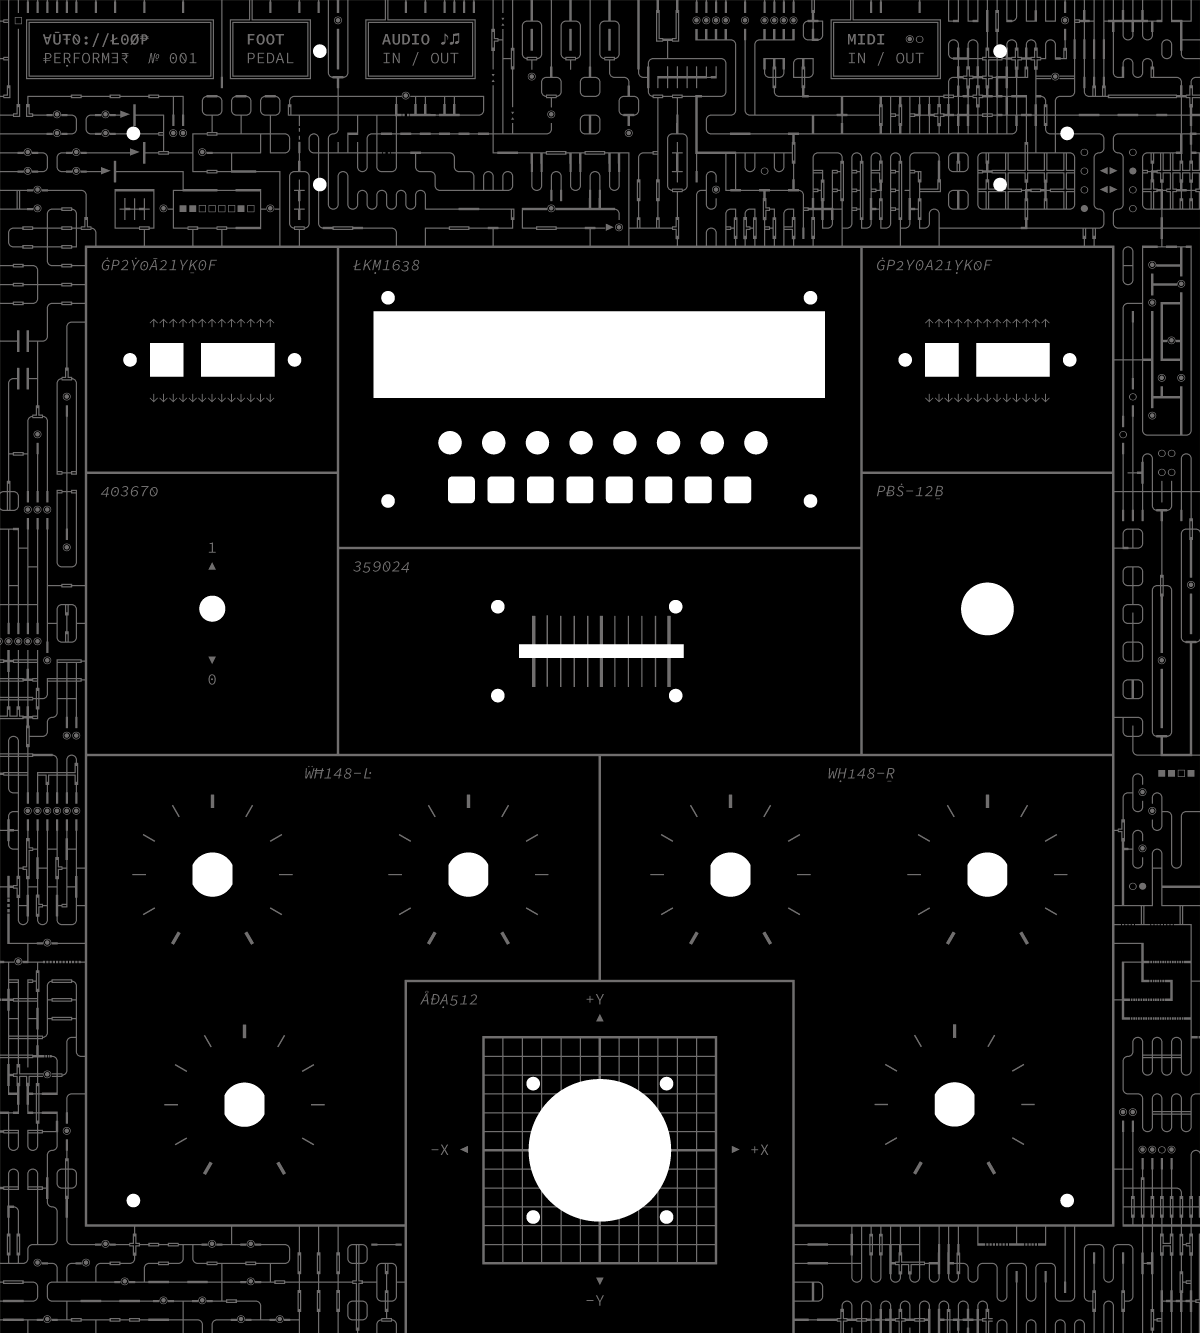 The graphics for the Autoloop Performer Synth.